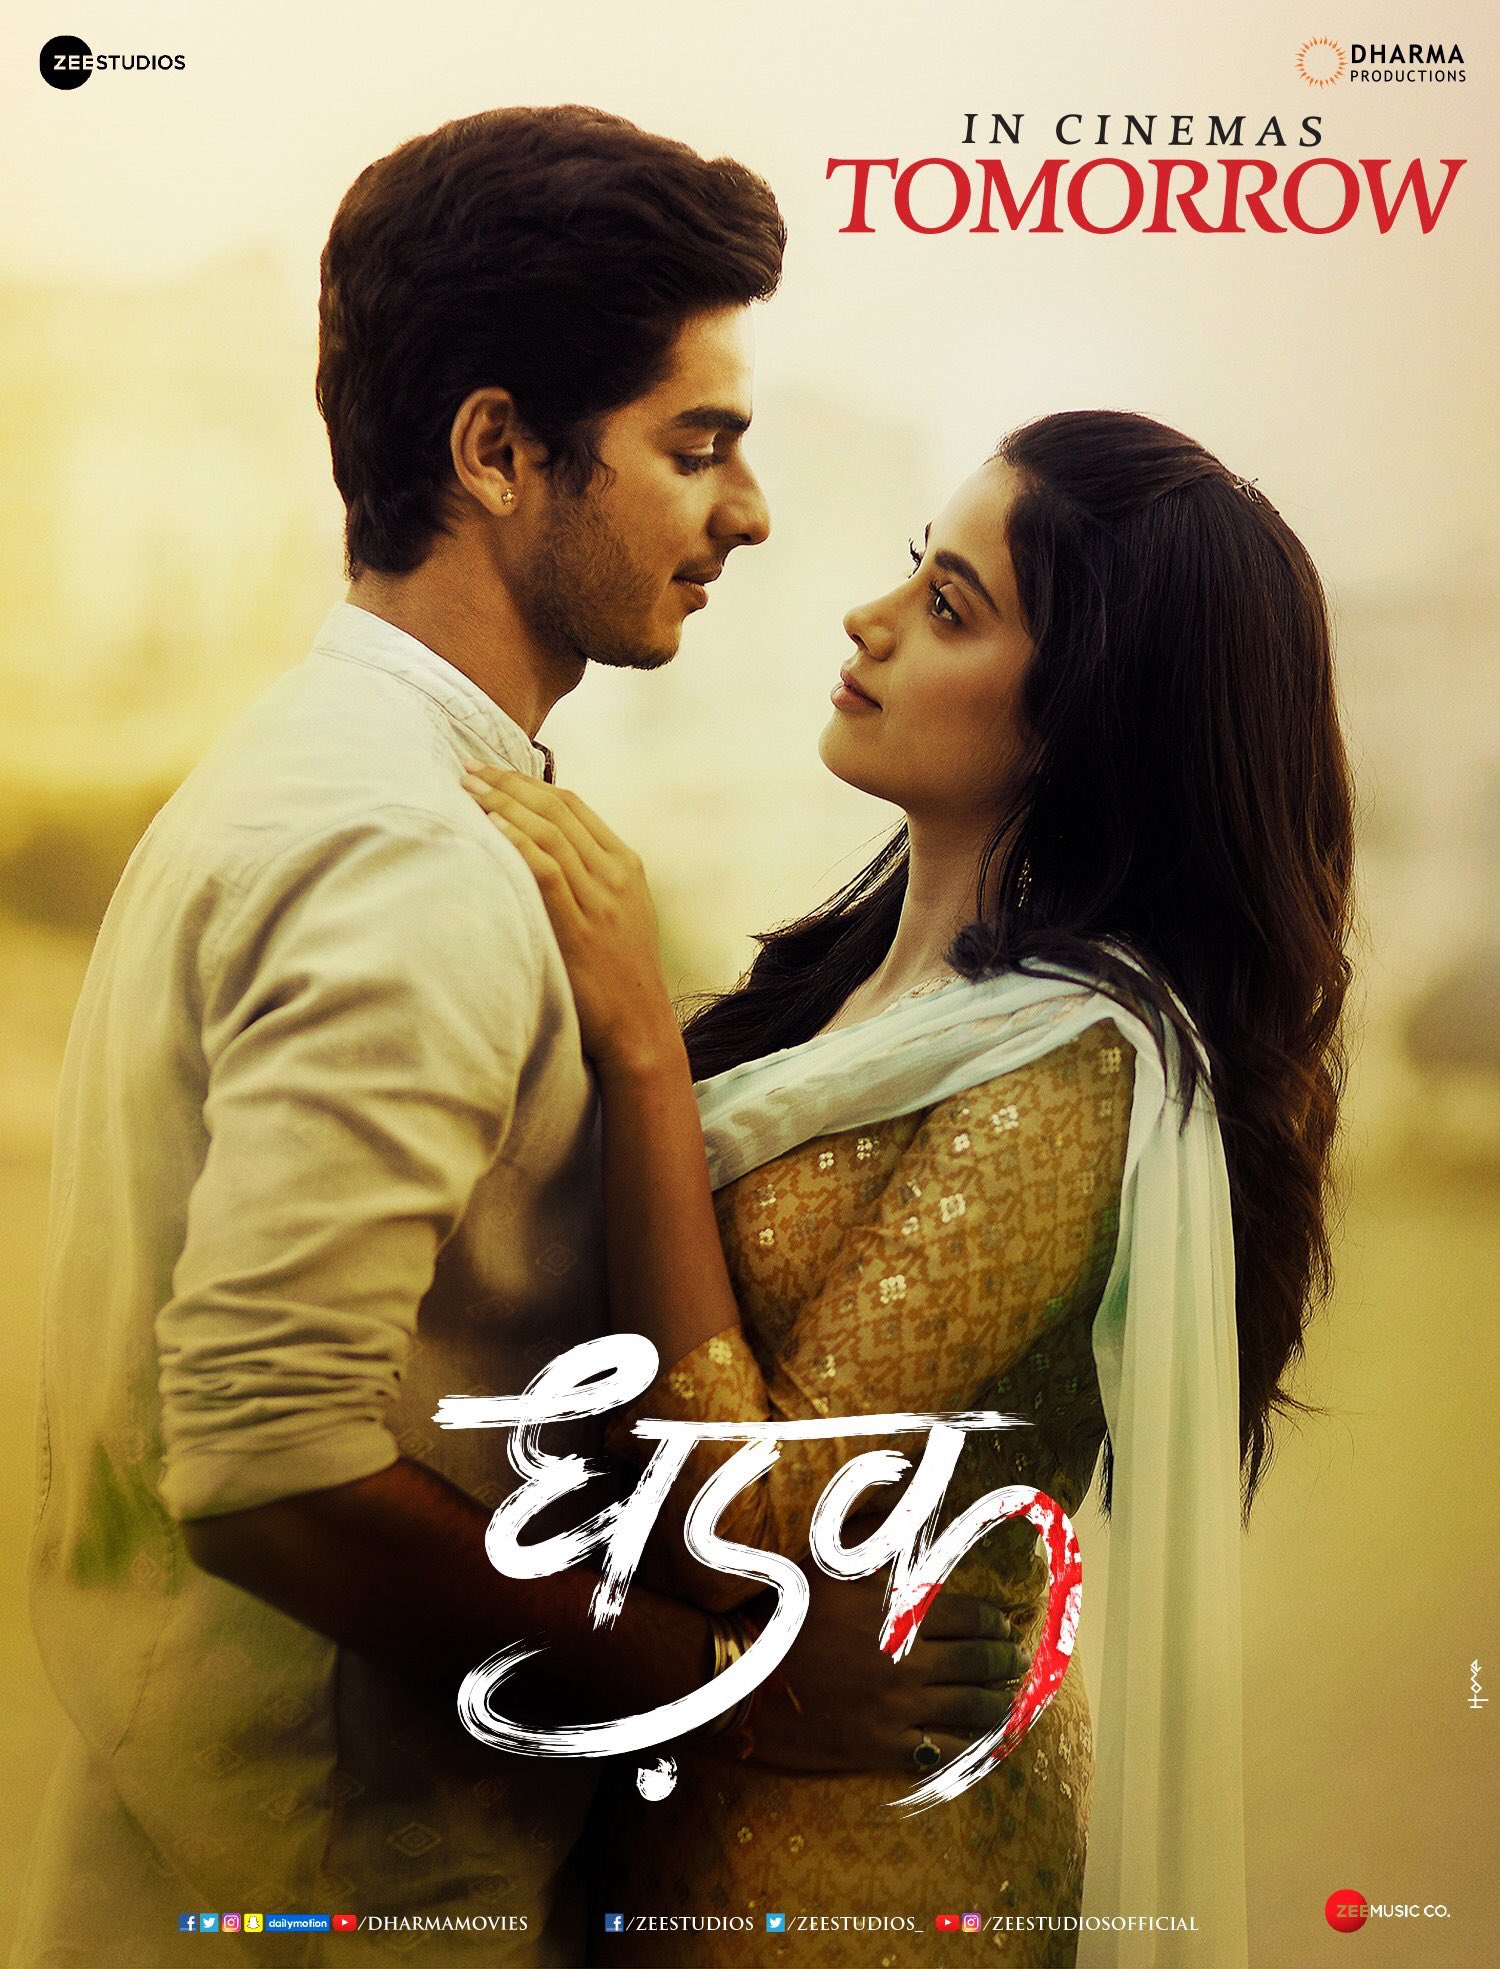 dhadak full movie download in hd free